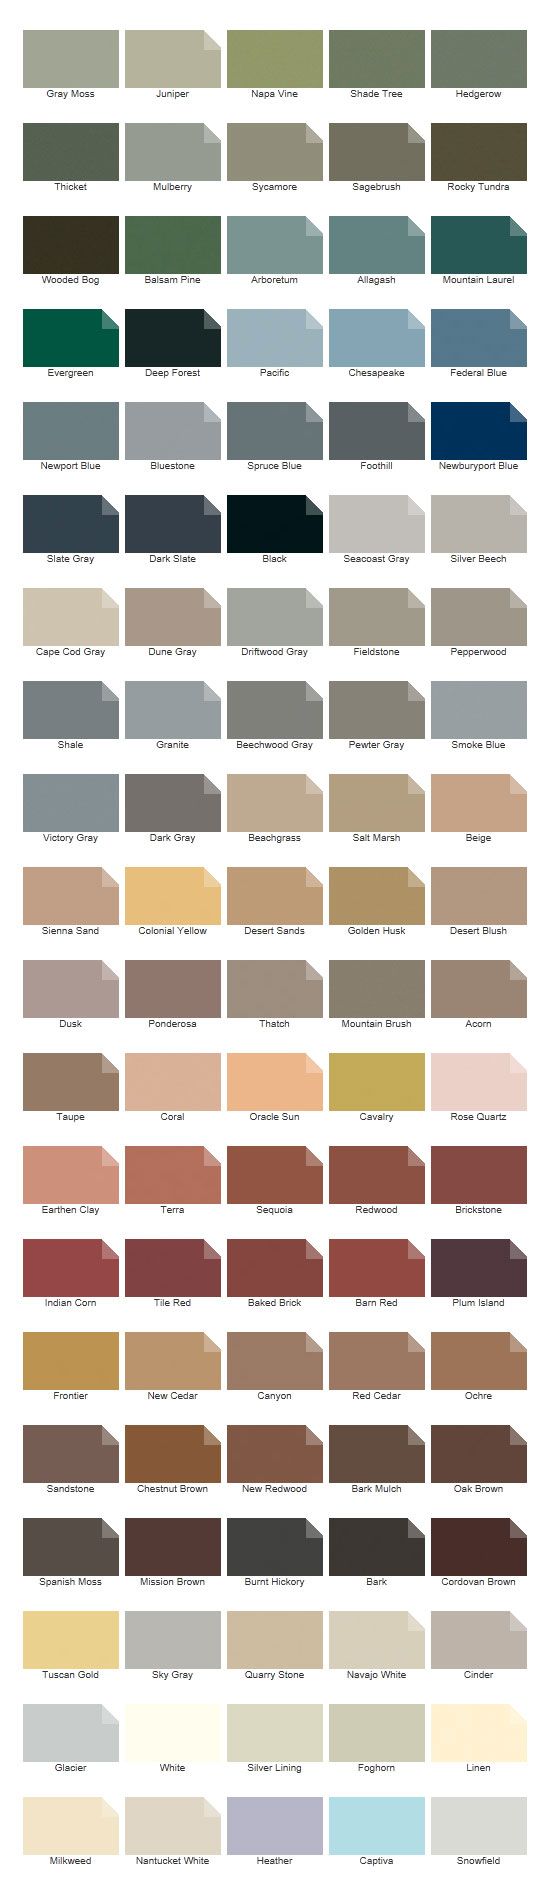 Cabot solid stain color 550 1895 studio for Exterior solid color wood stain